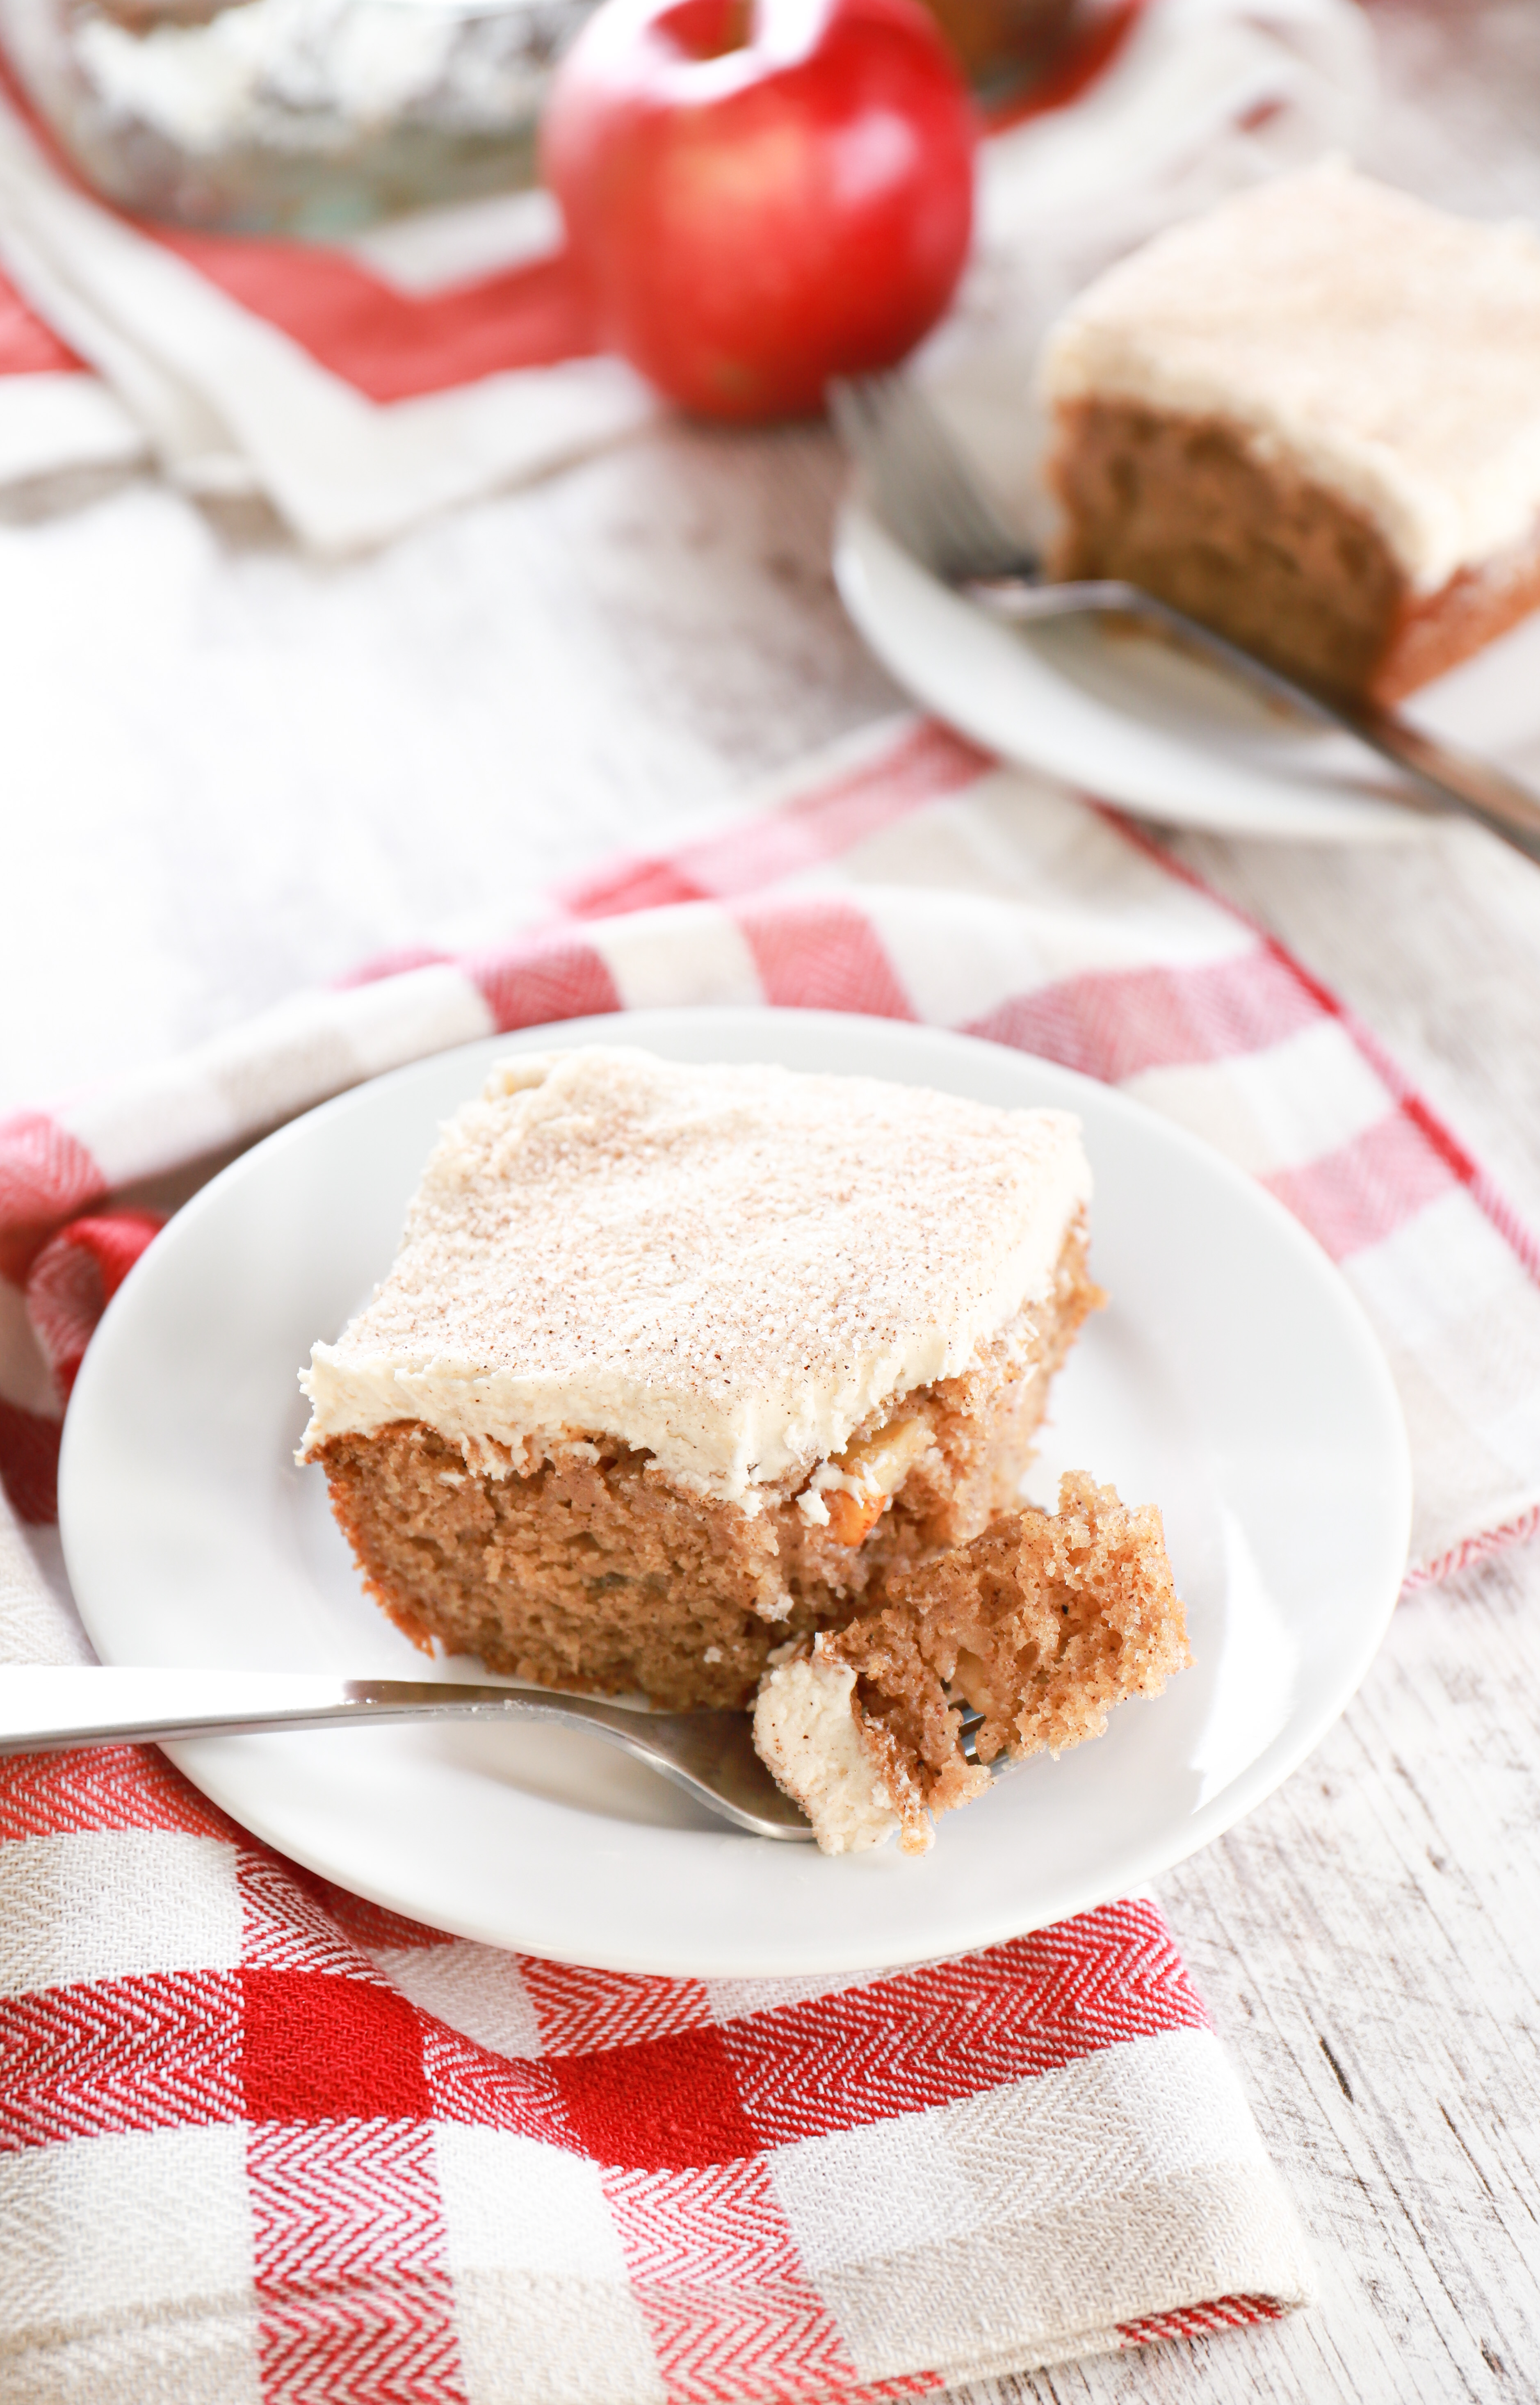 Piece of apple cake on a small white plate with a bite of cake on fork. Remaining cake in the background